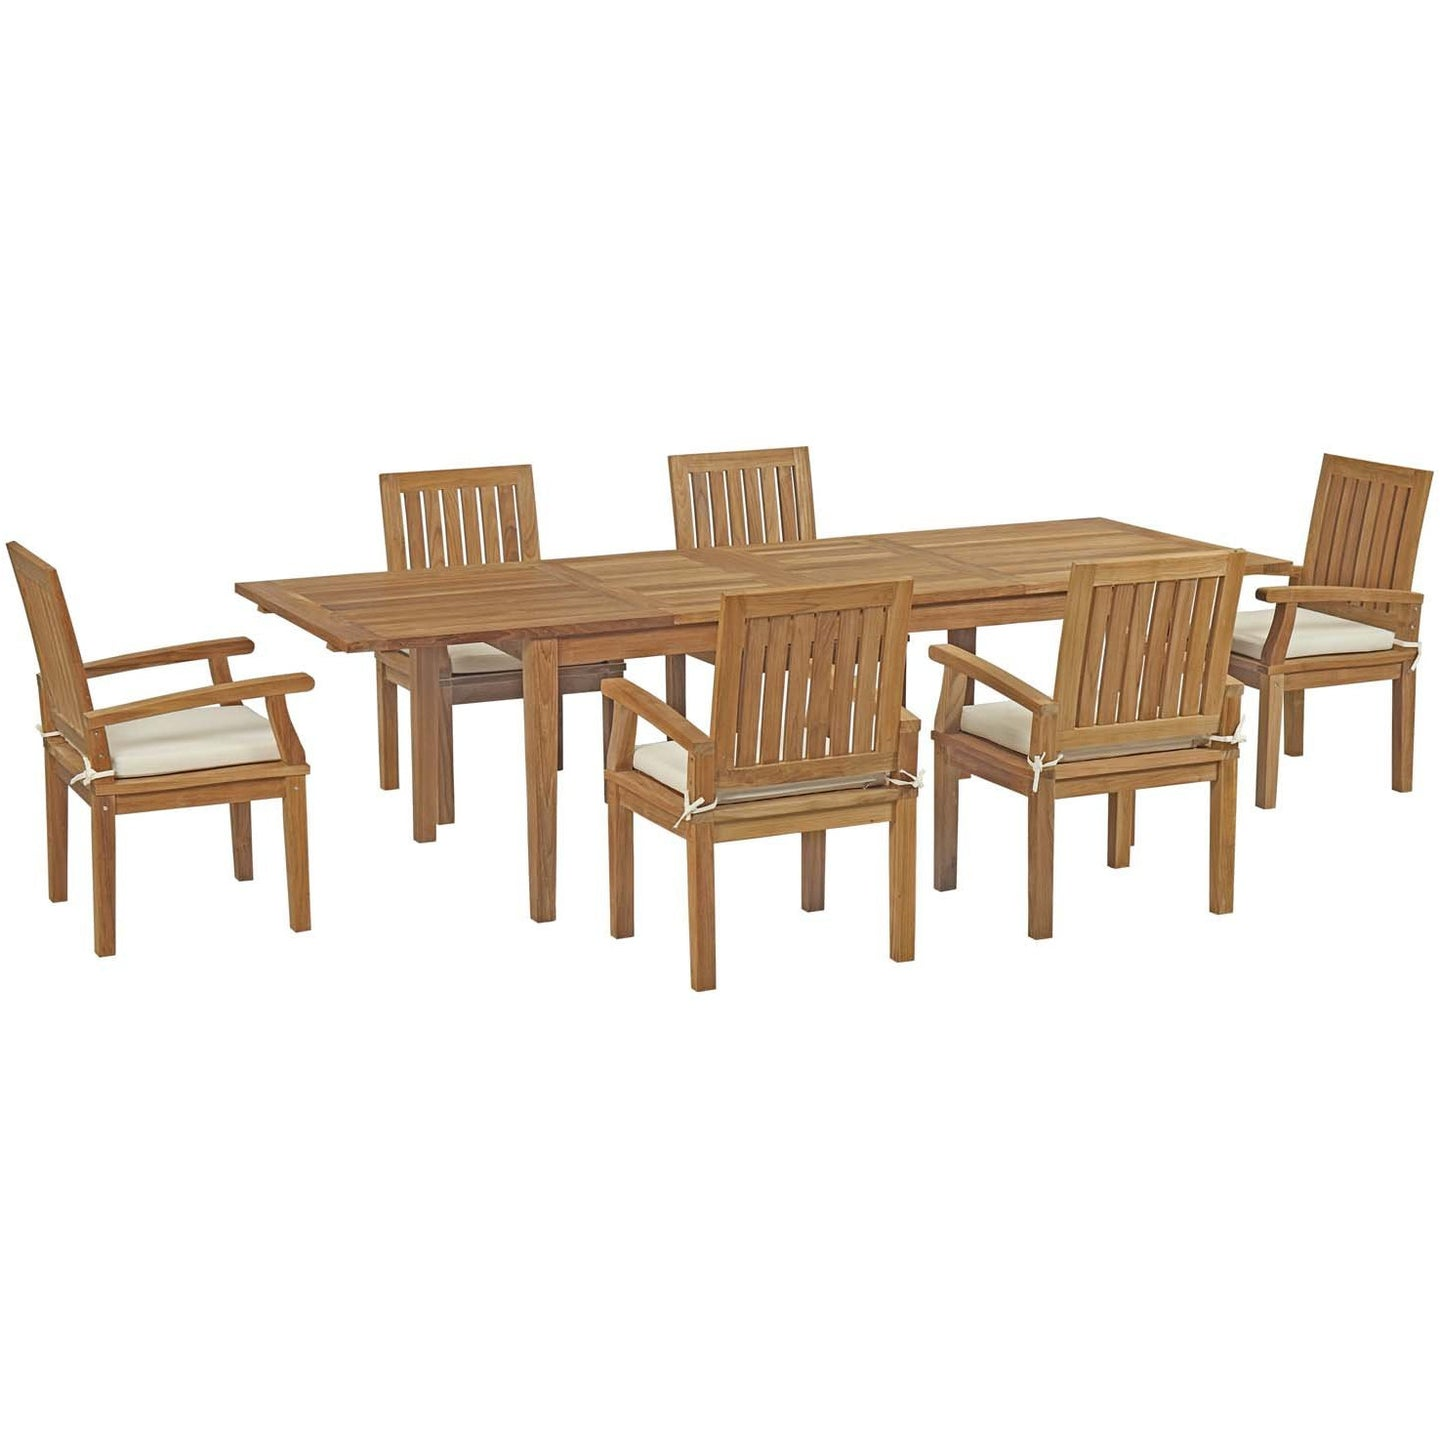 Modway Furniture Modern Marina 7 Piece Outdoor Patio Teak Outdoor Dining Set - EEI-3279